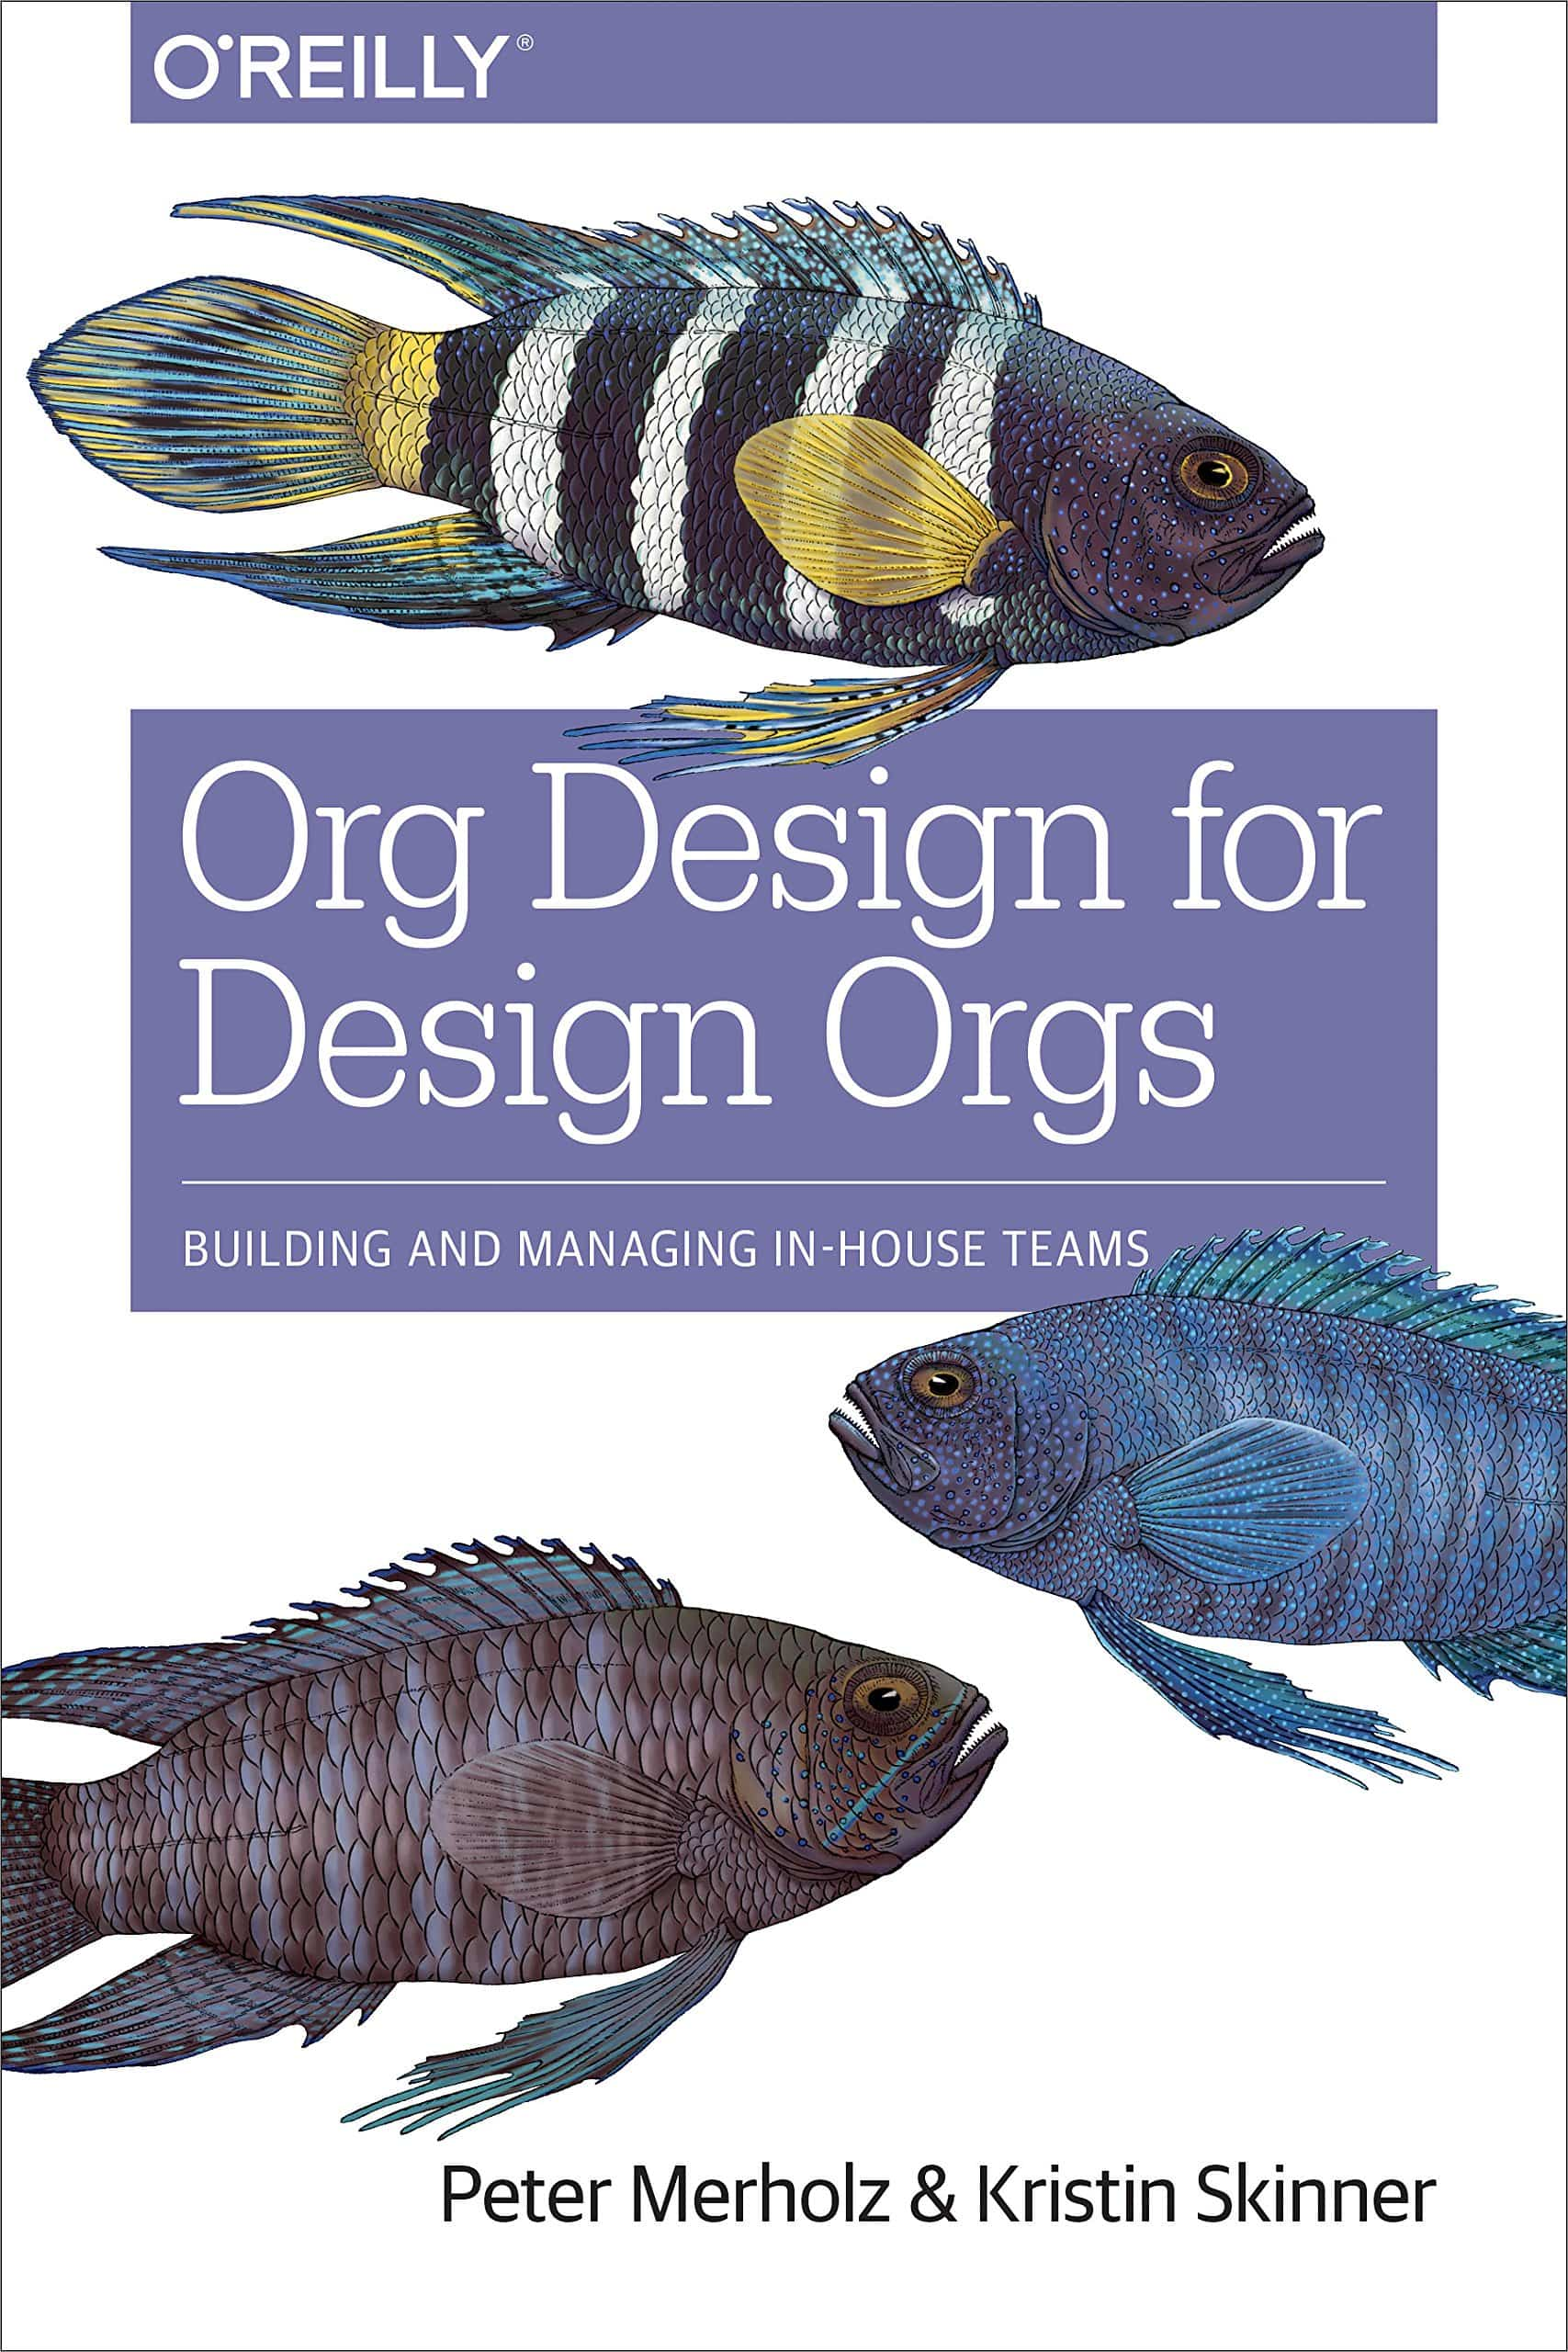 The cover of Org Design for Design Orgs